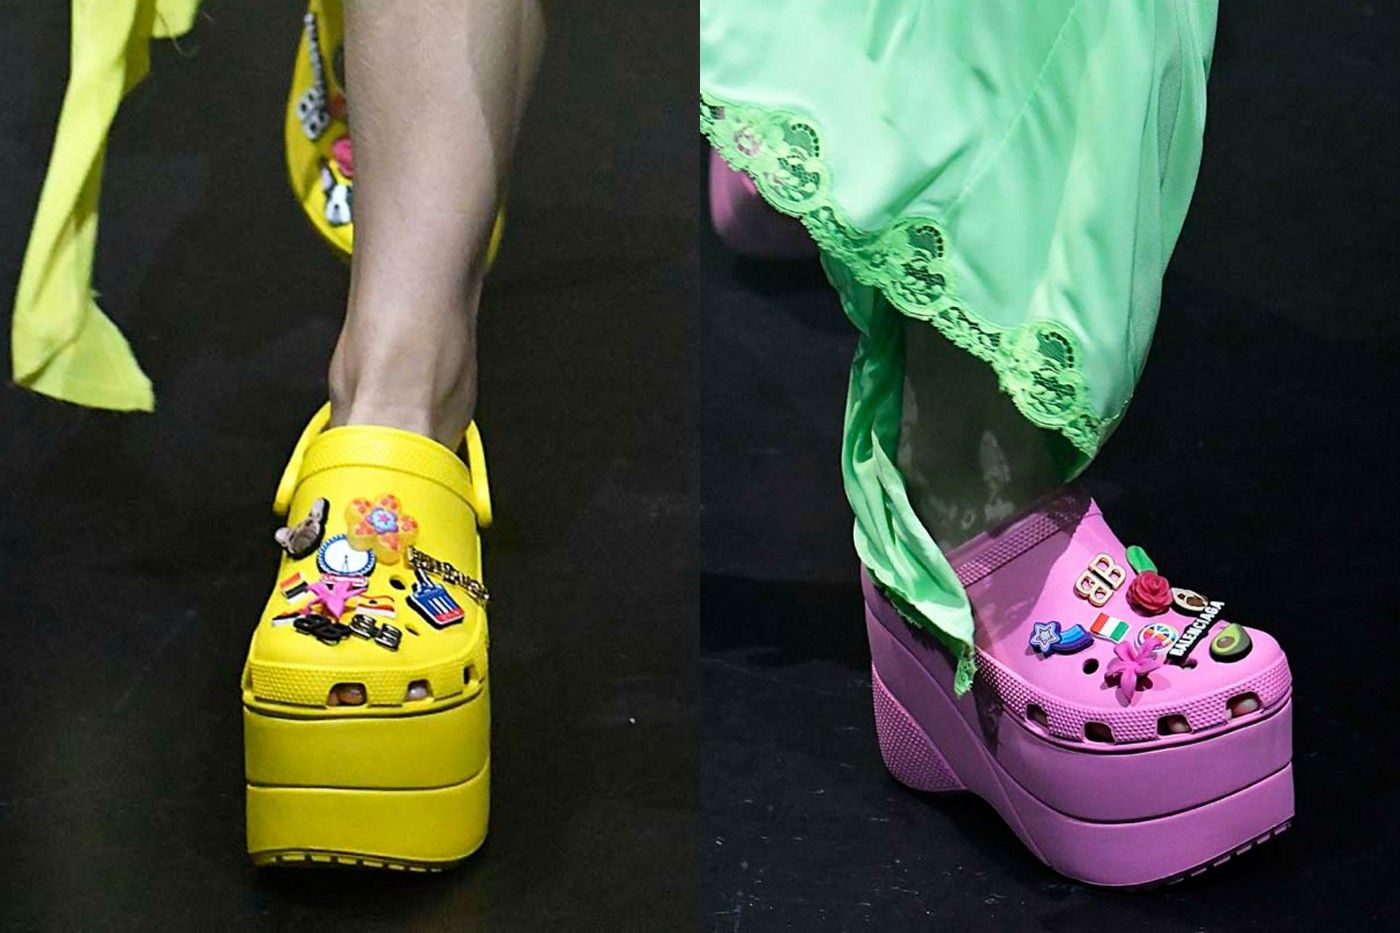 66de3dba4670 OMG Those Balenciaga Platform Crocs Sold Out In Less Than a Day on Pre-Order